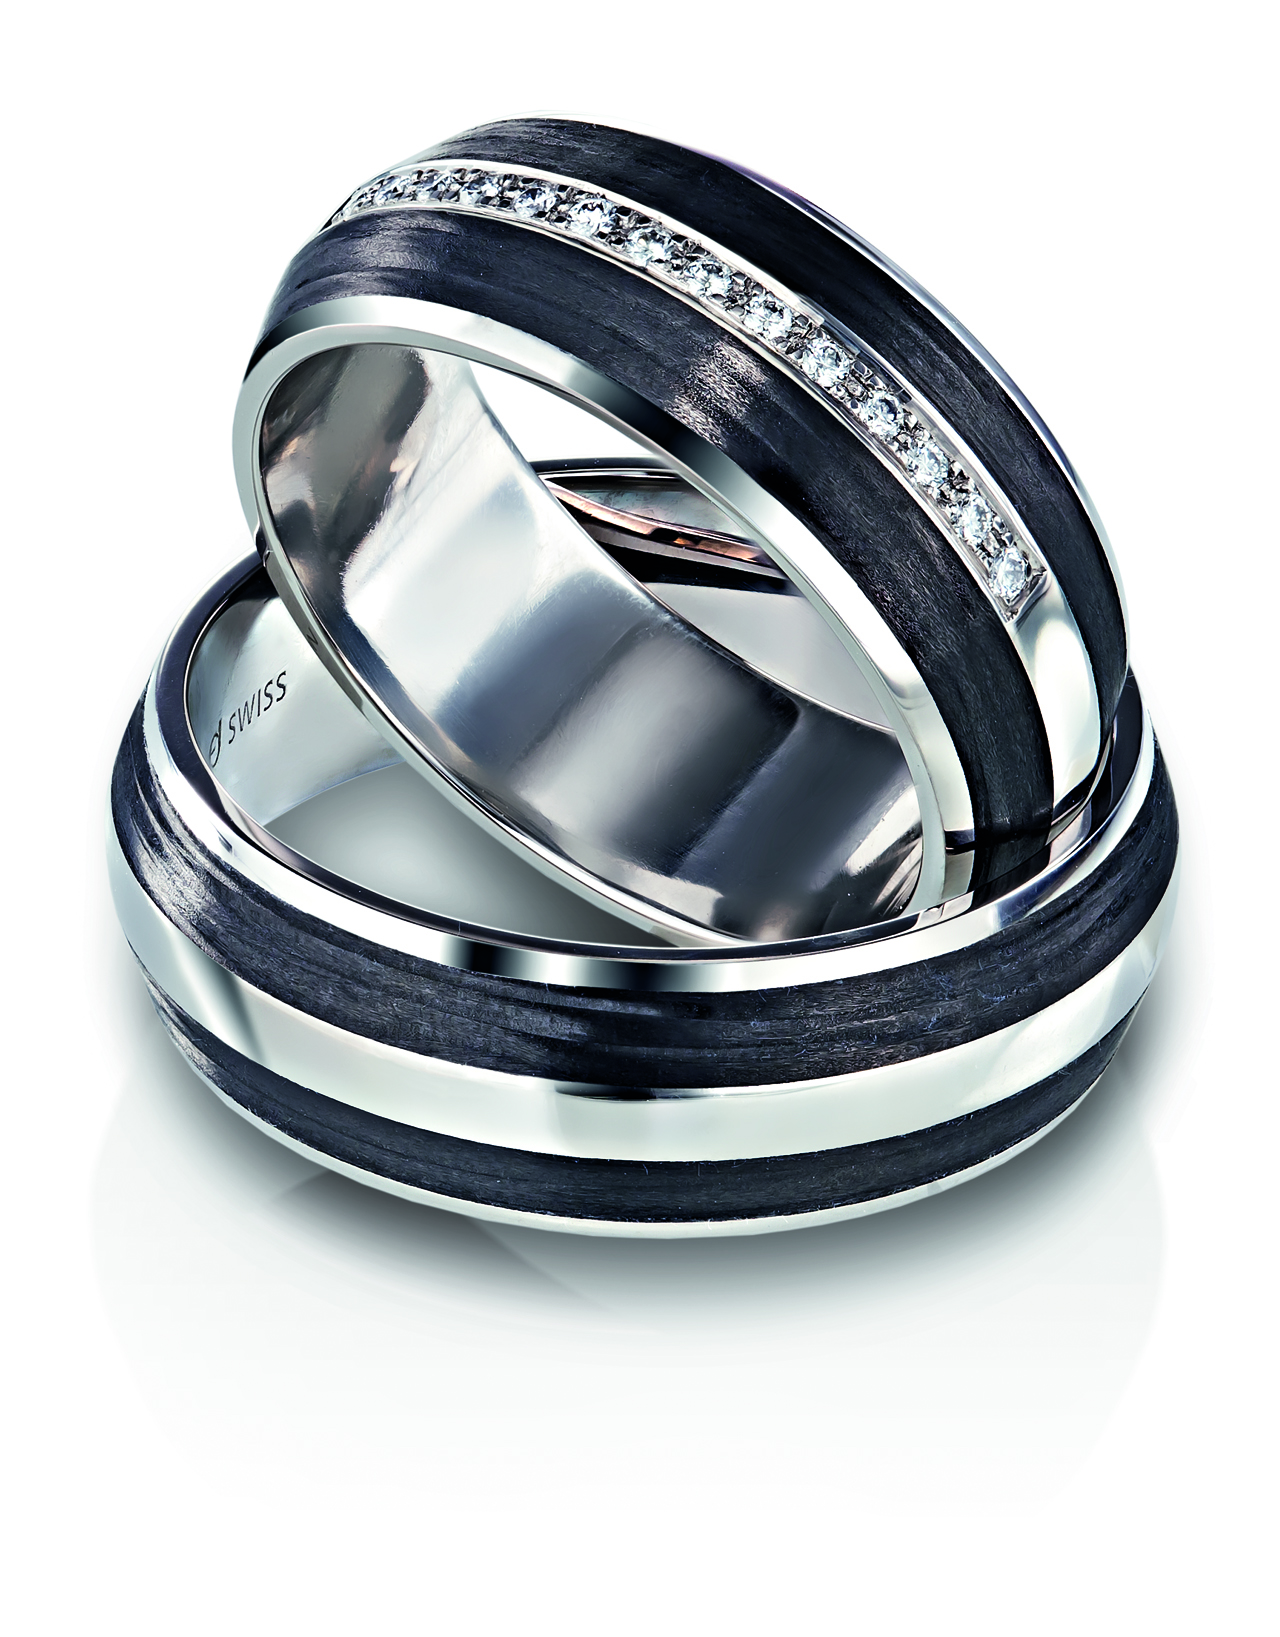 wedding index rings bands all ring fiber carbonfiber carbon